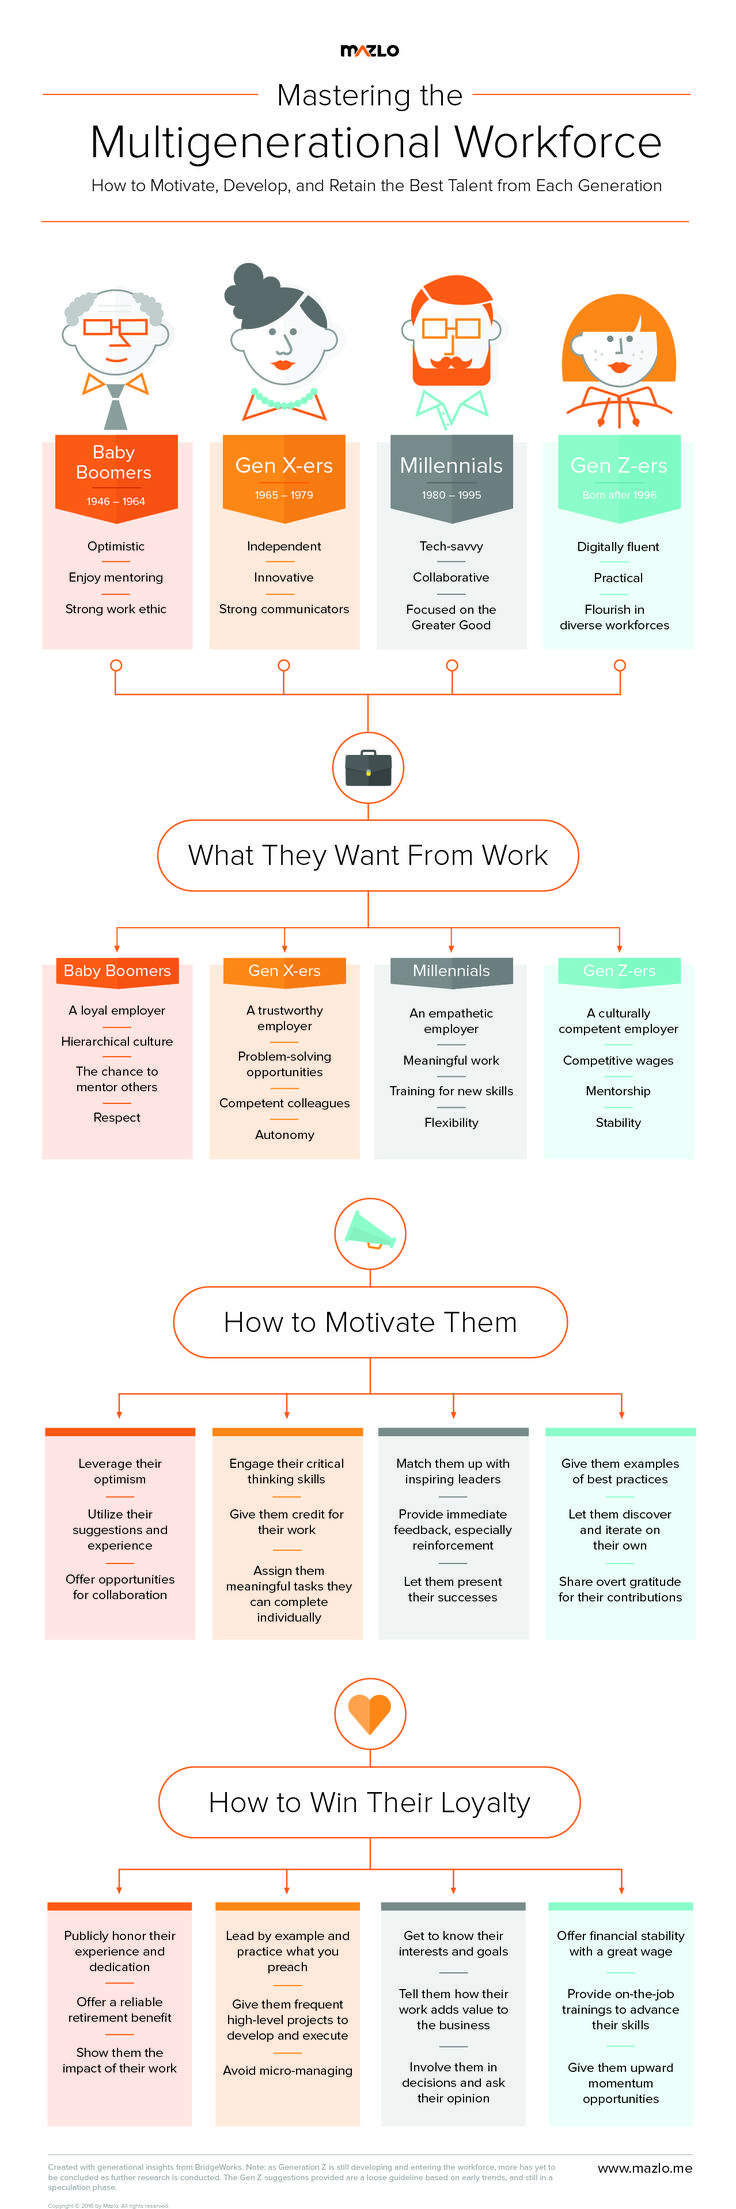 How To Master The Multigenerational Workforce